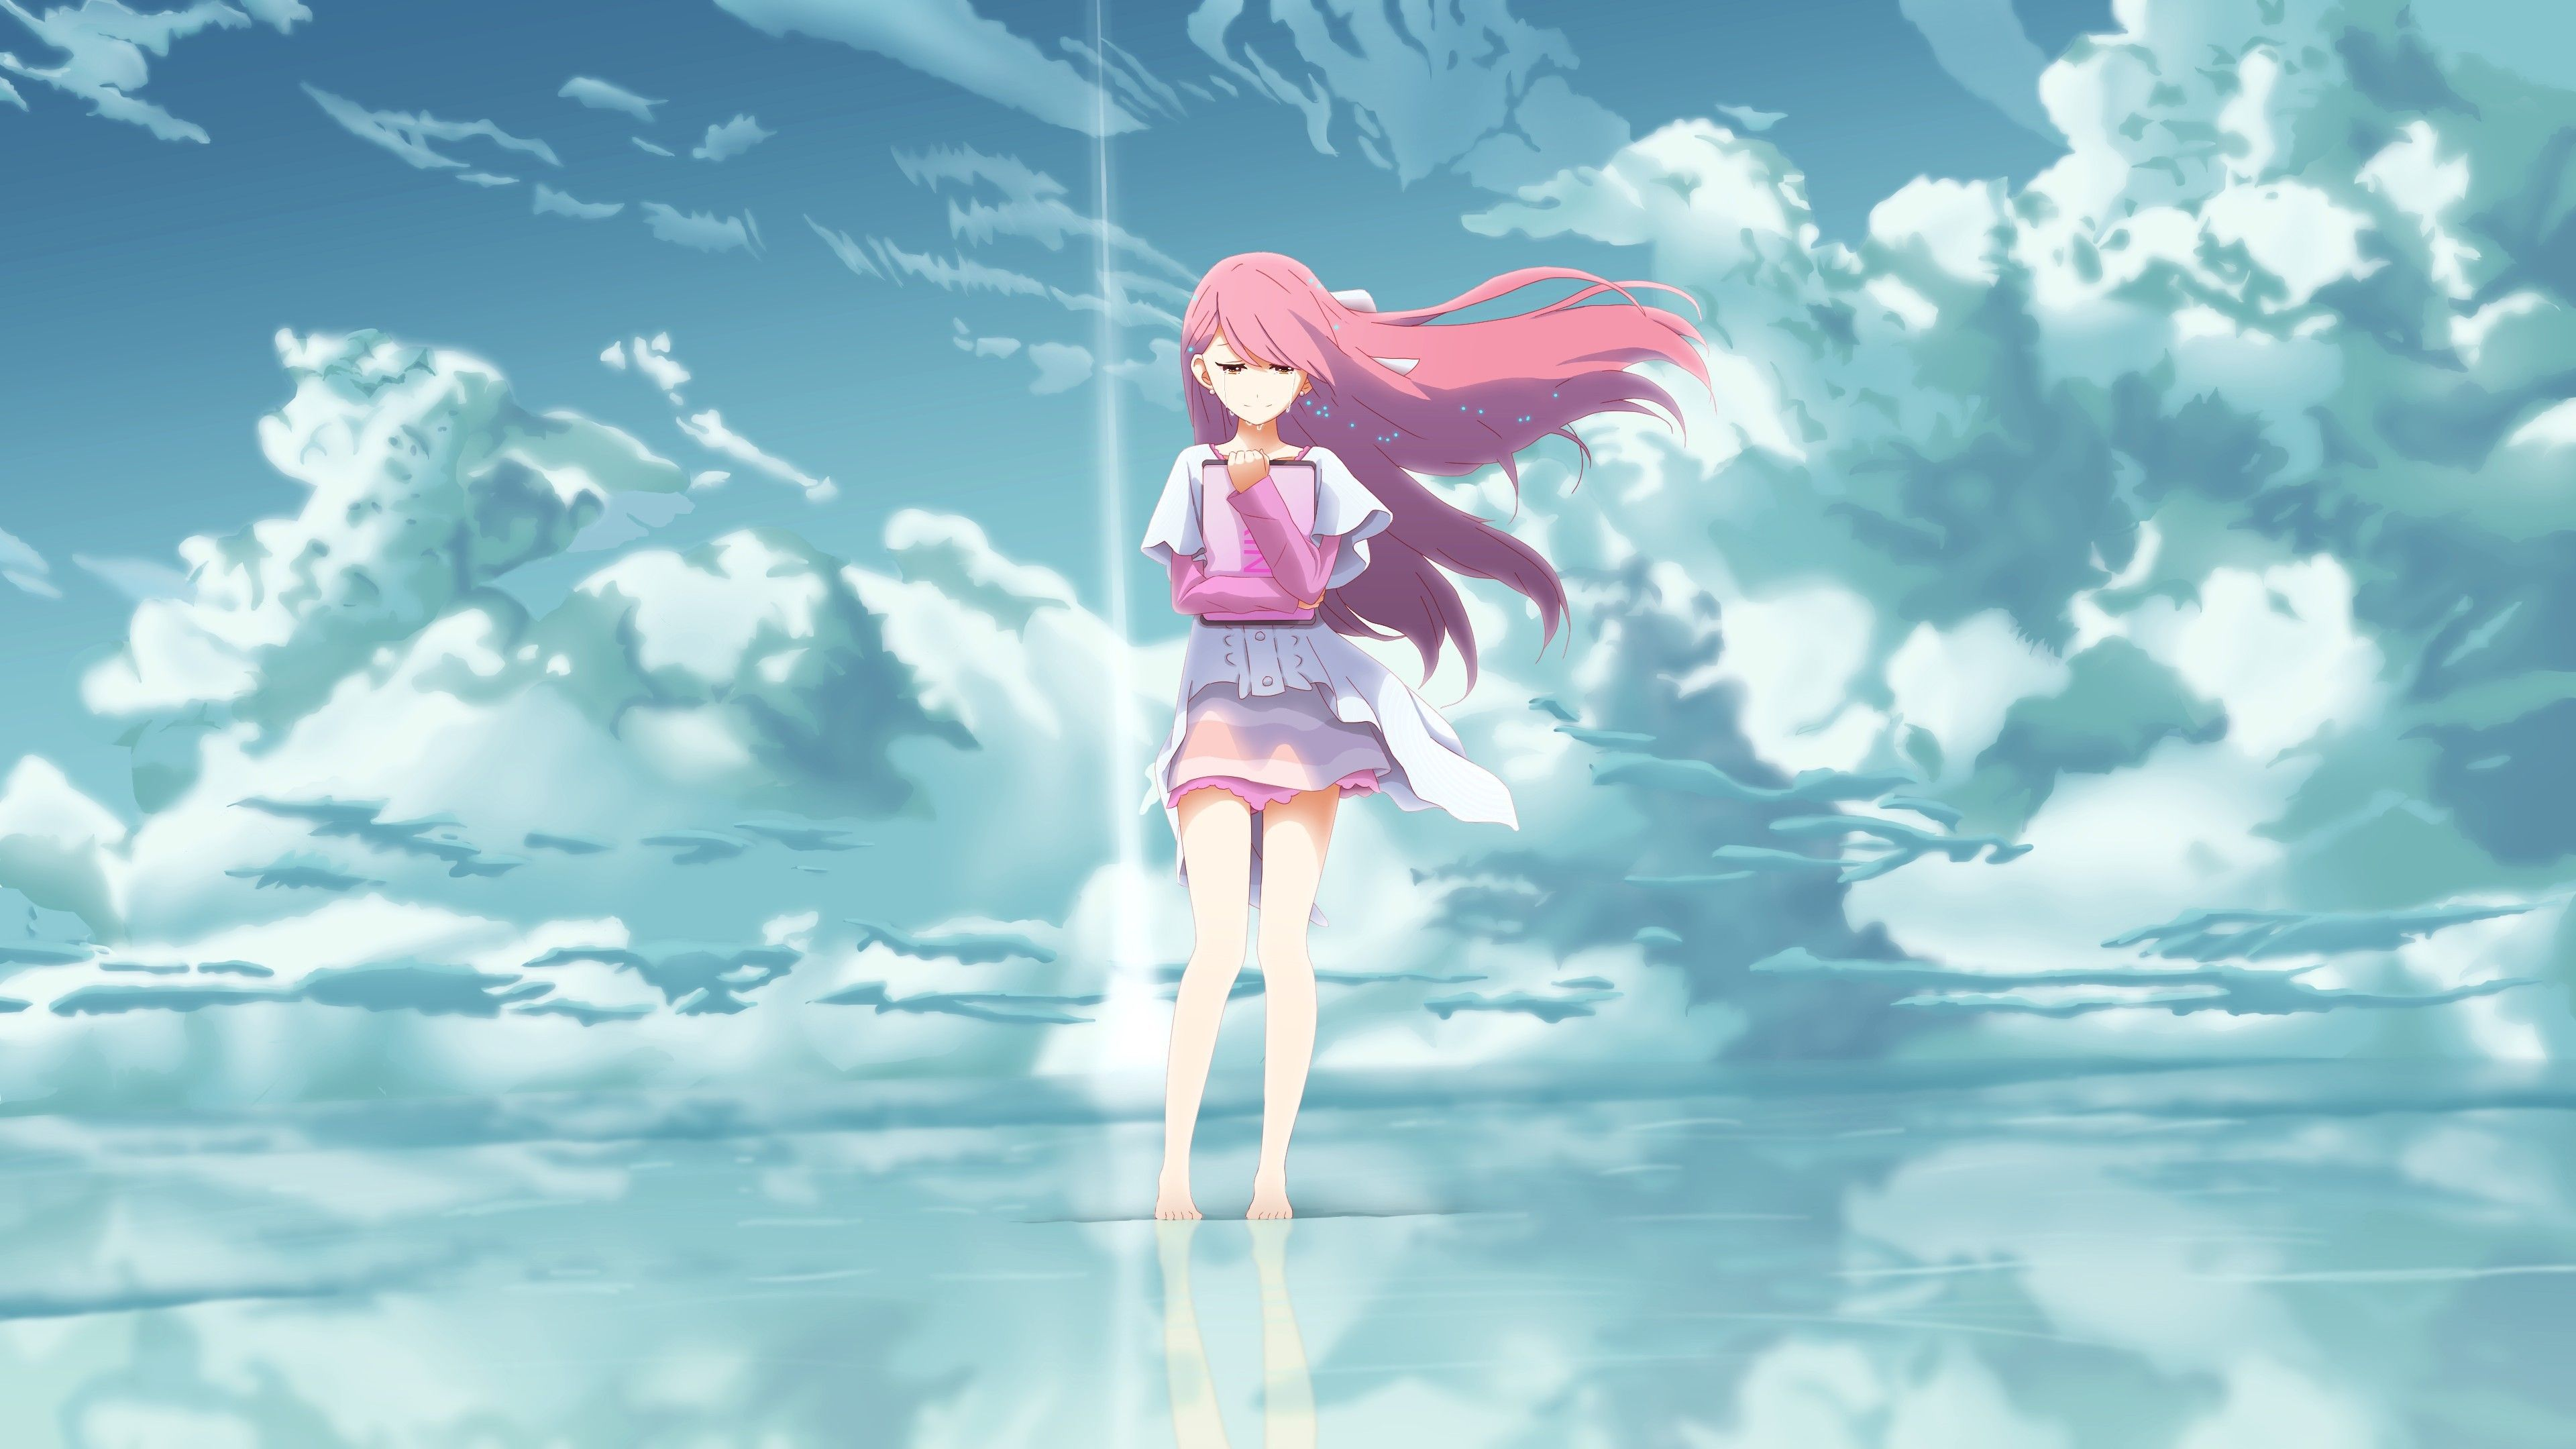 12 750 Anime Wallpapers Hd 1080p For Desktop Backgrounds Hd Ideas Anime Background Anime Wallpaper Anime